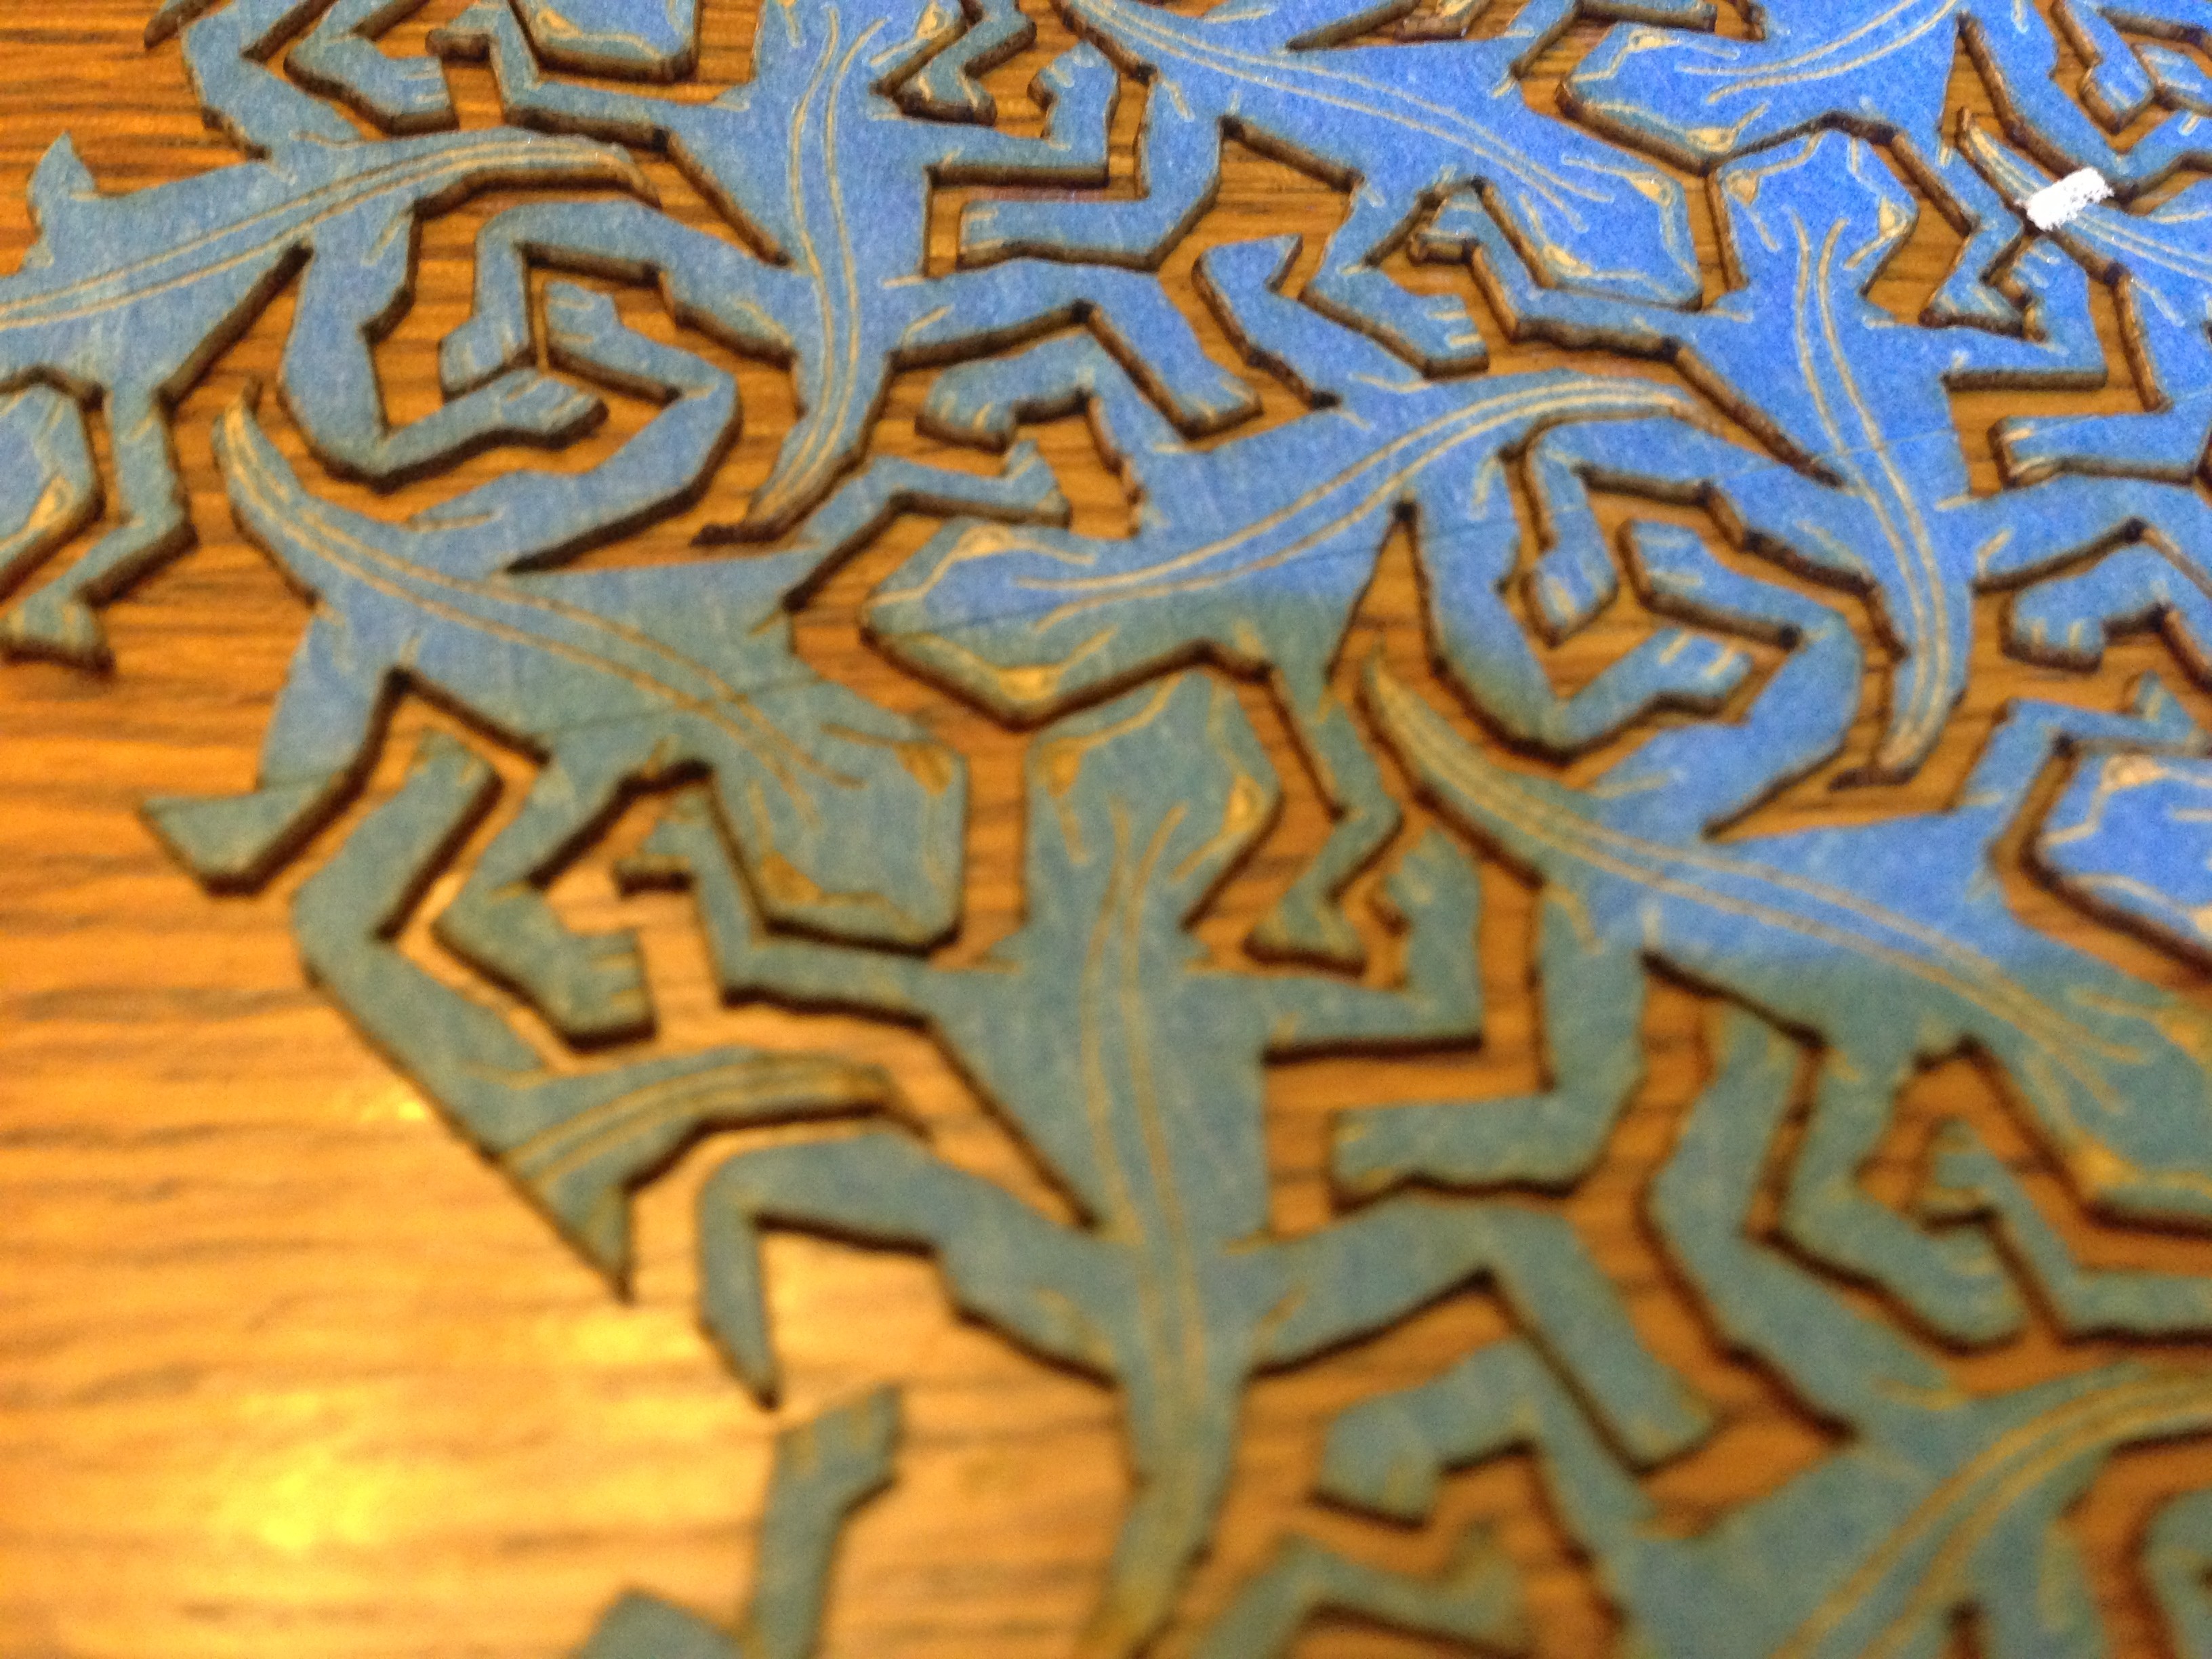 Picture of Wood Inlay MC Escher Reptiles Motion Art (part 1/2)